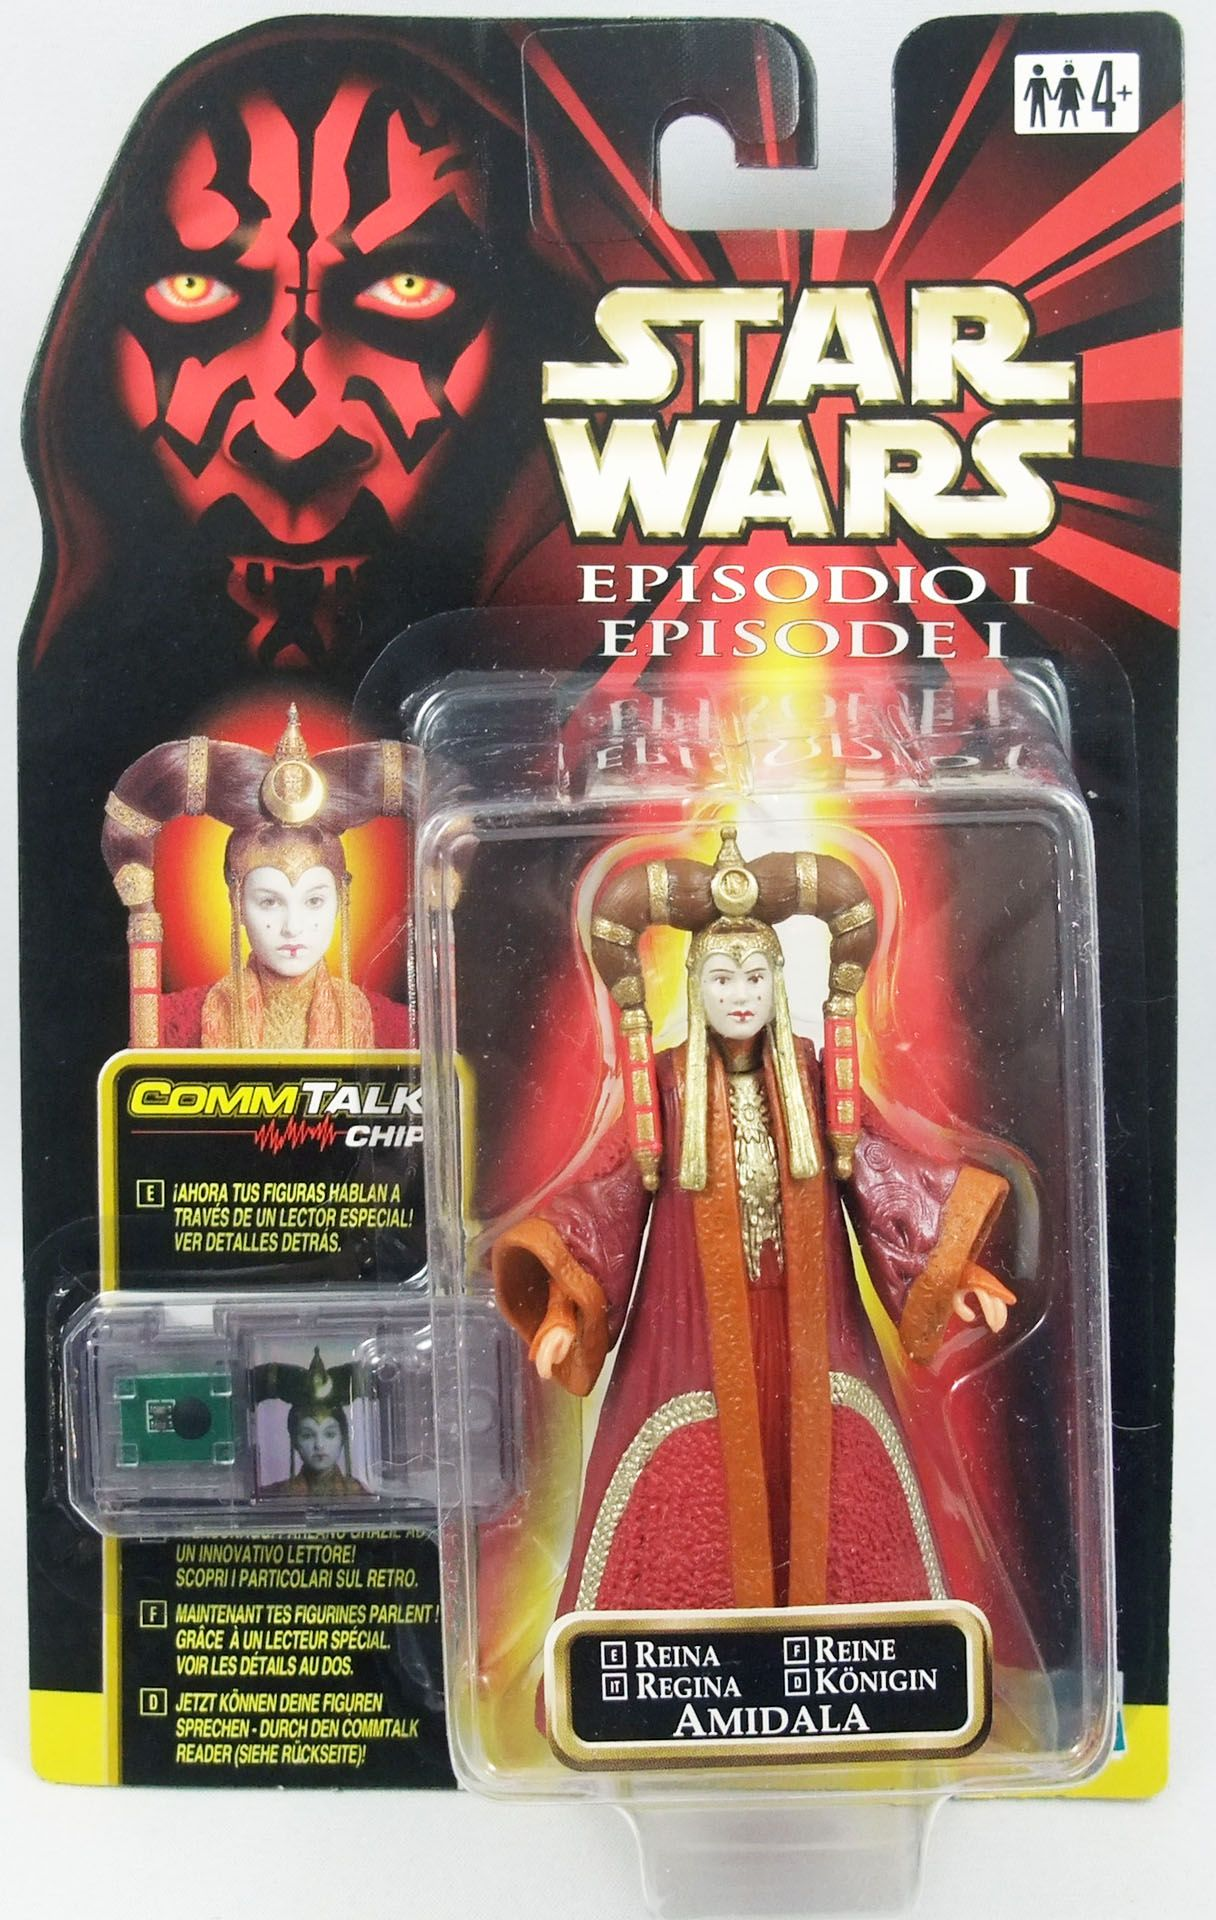 Star Wars Episode 1 (The Phantom Menace) - Hasbro - Queen Amidala (Coruscant)